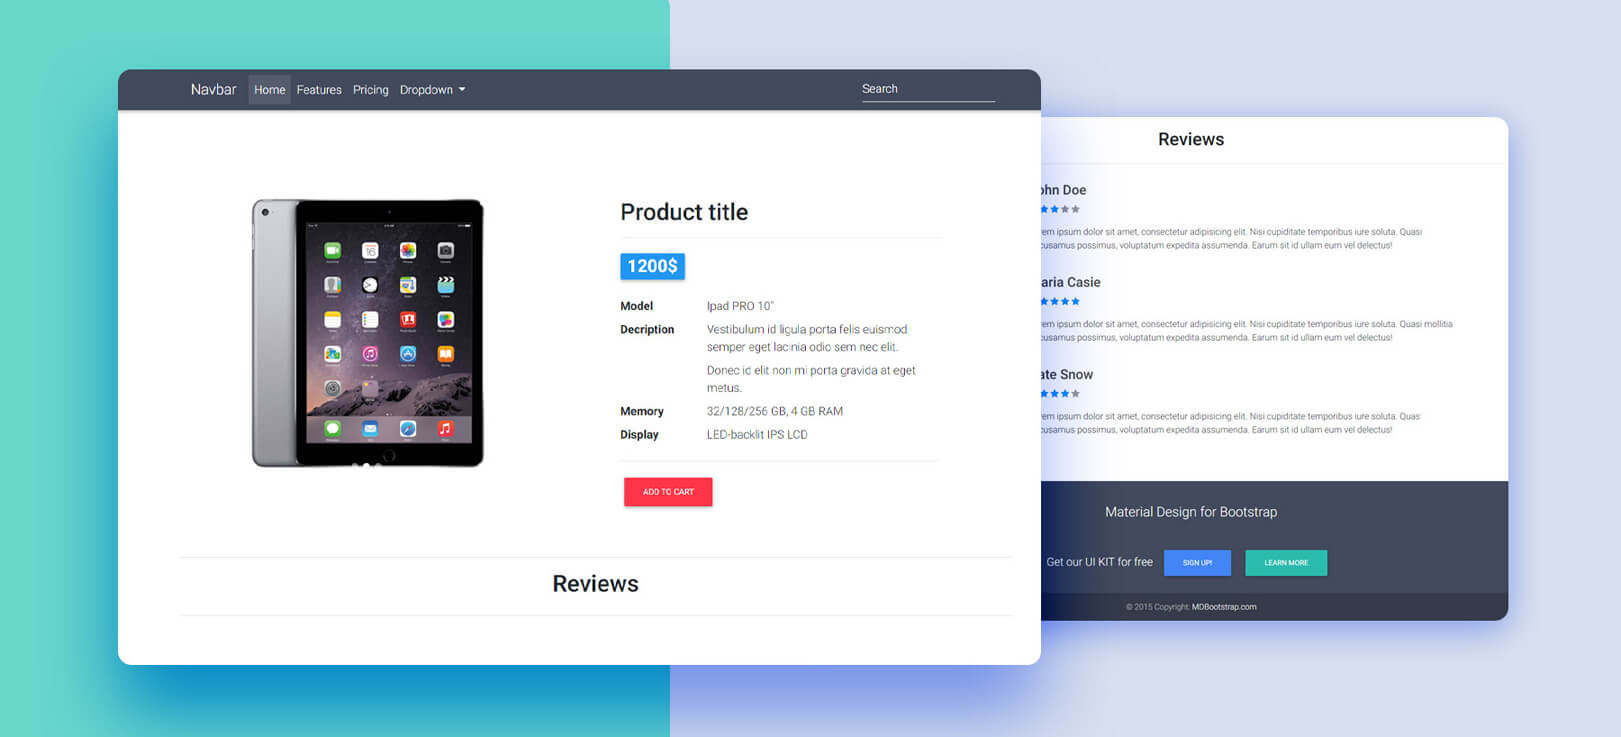 Gadgets ecommerce bootstrap template 19 a design that comes with a minimal, clean look and nordic as well as an. Github Mdbootstrap Ecommerce Template Bootstrap Ecommerce Template Bootstrap 4 Material Design Attention New Templates For The Latest Bootstrap 5 Are Now Also Available Access New Free Templates Via The Link Below